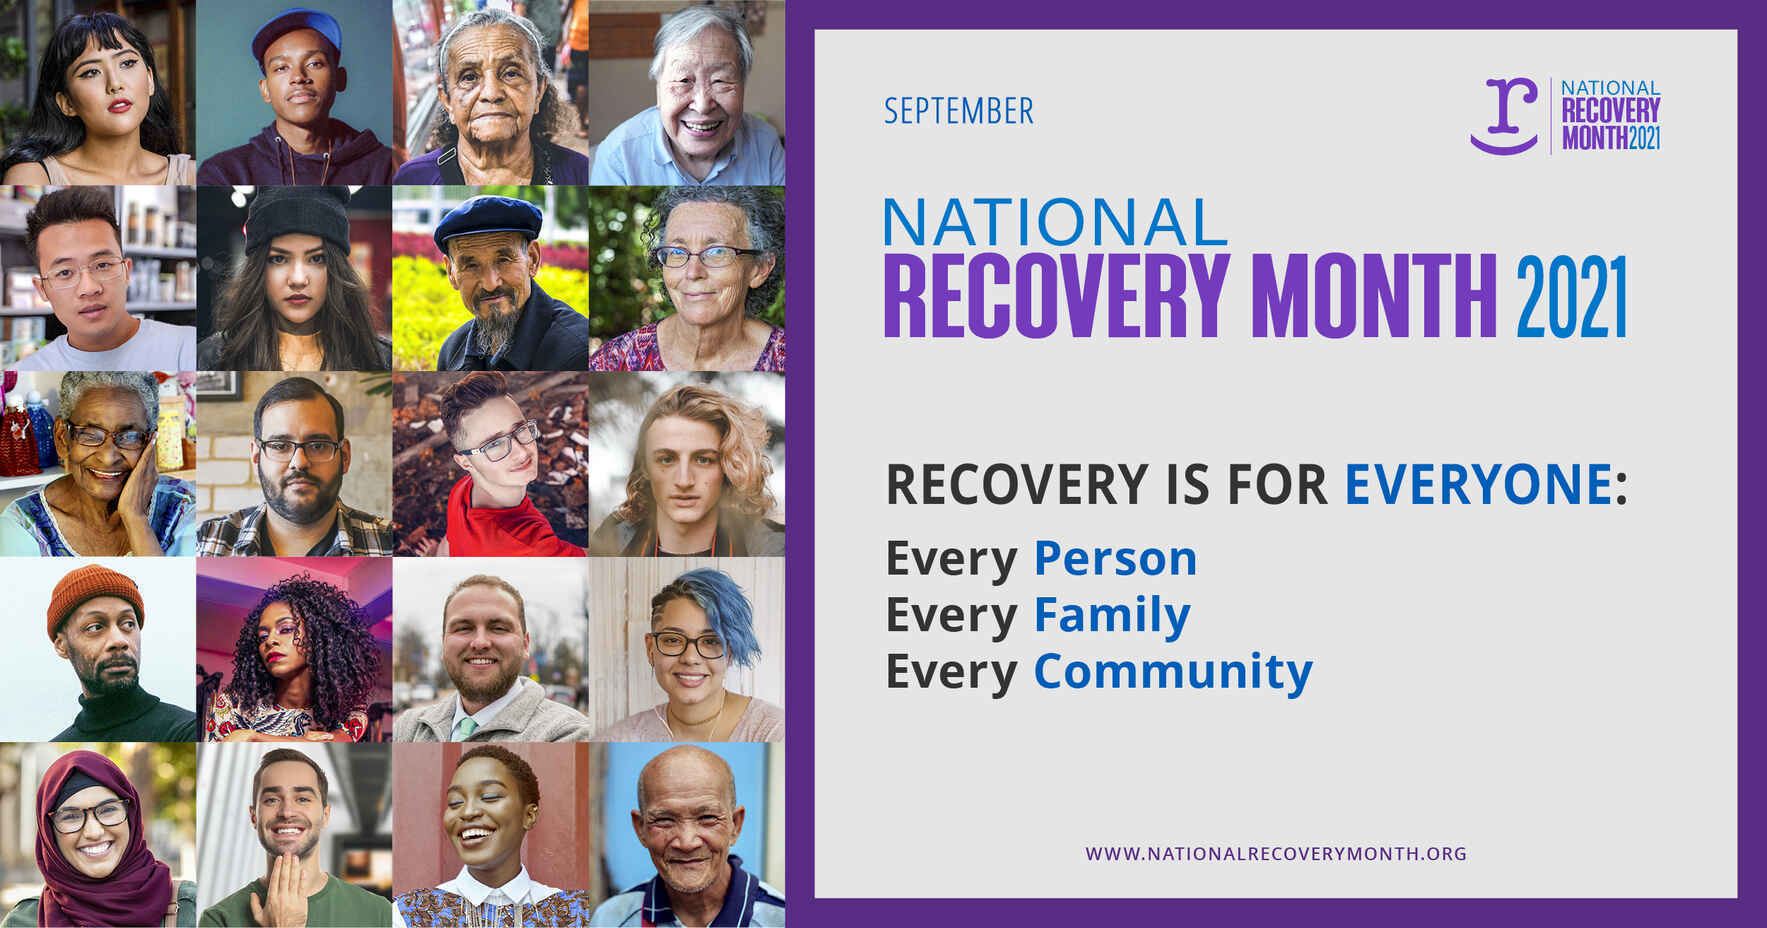 Broward National Recovery Month 2021 image